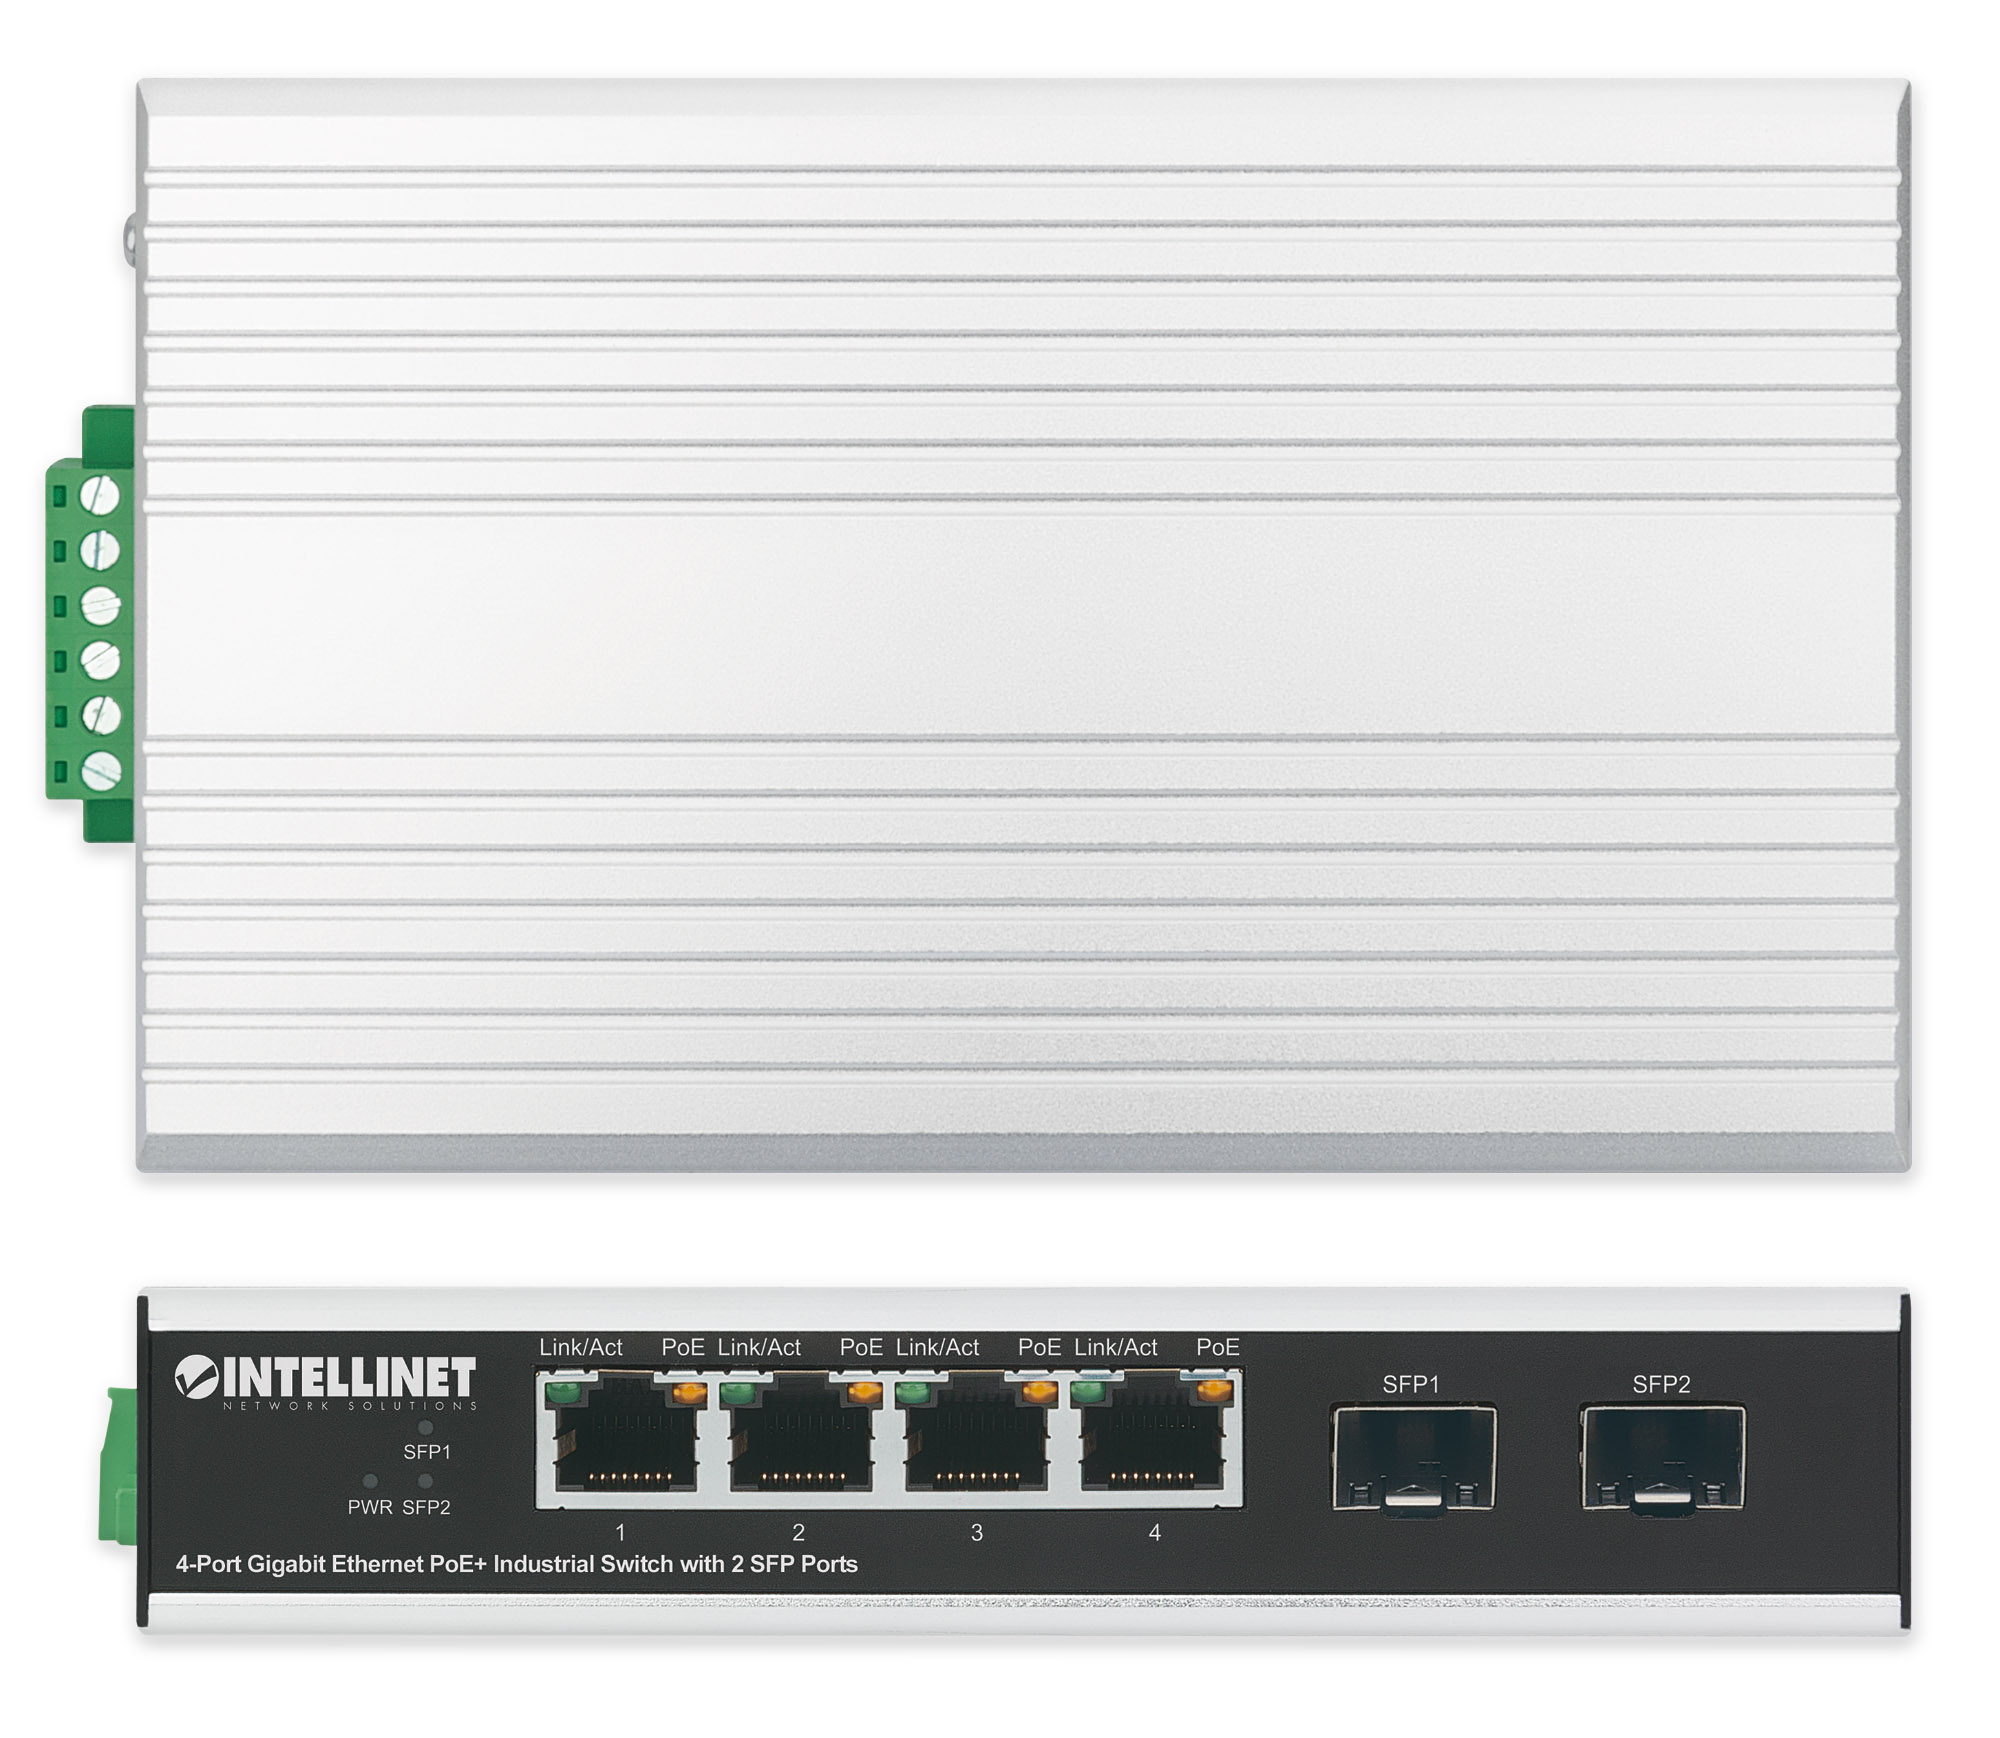 4-Port Gigabit Ethernet PoE+ Industrial Switch with 2 SFP Ports